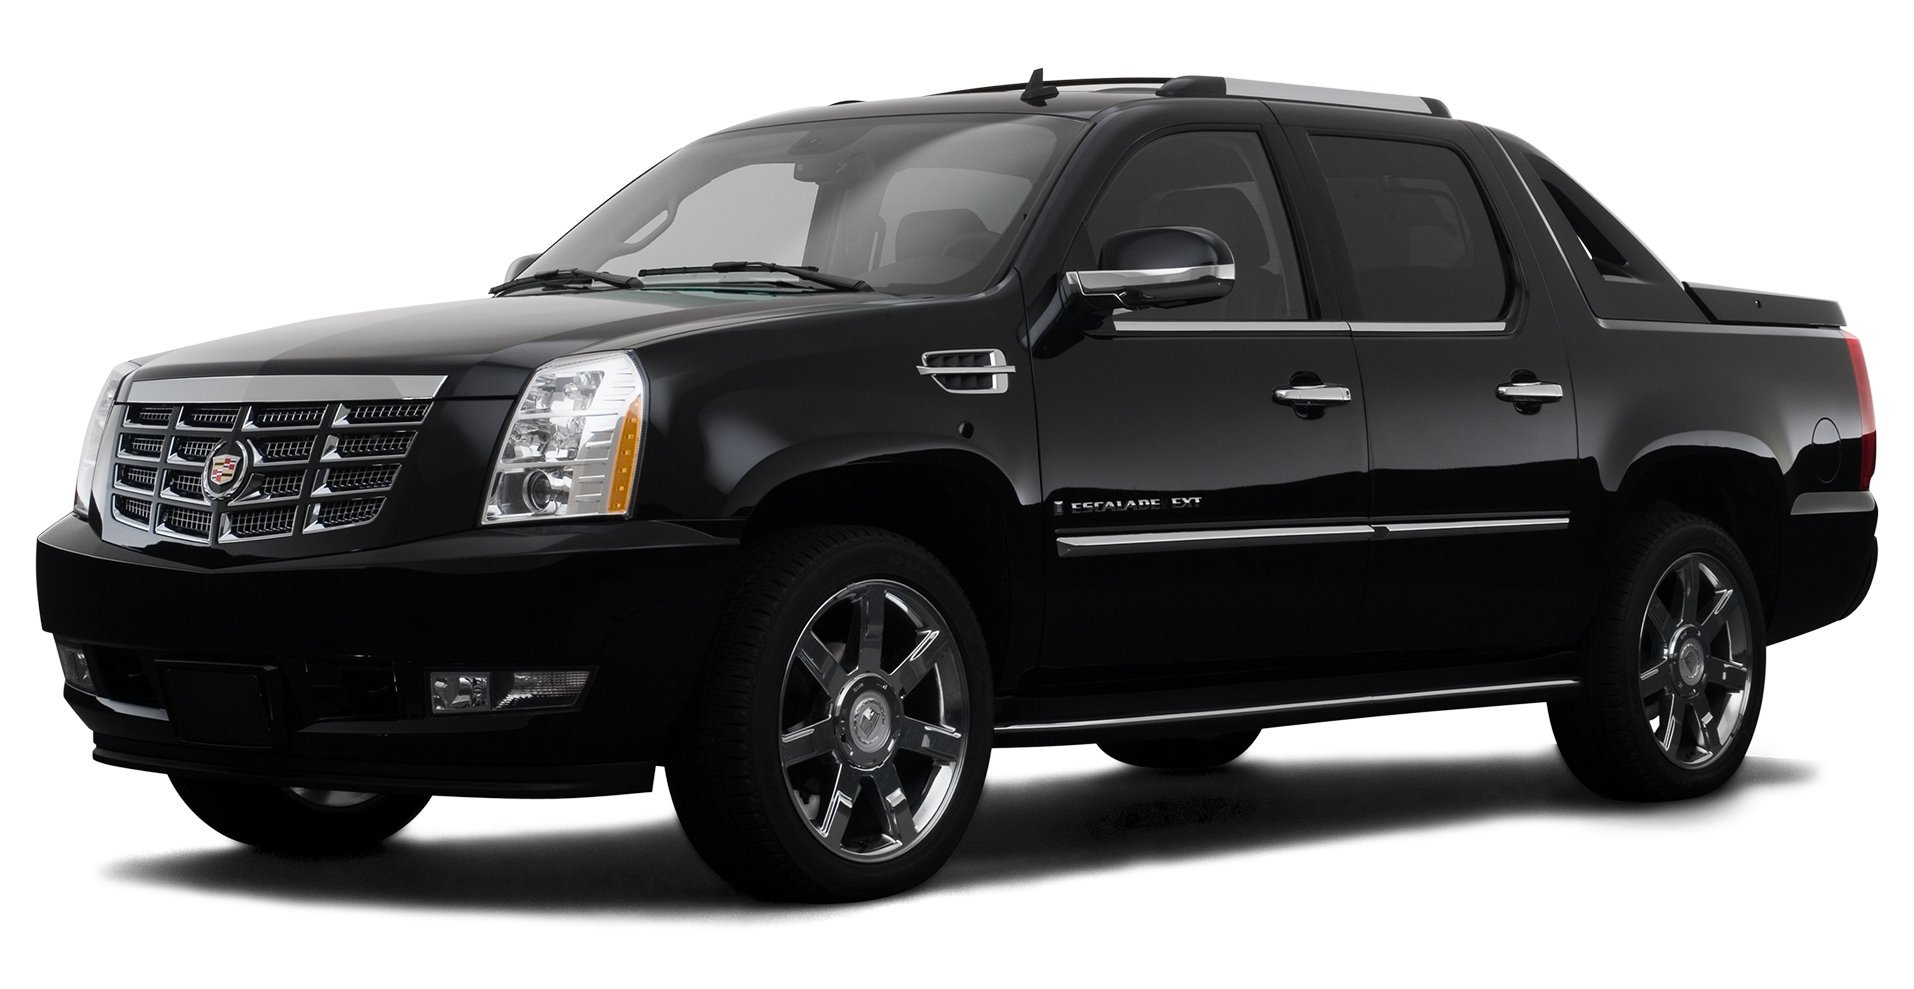 2008 cadillac escalade ext reviews images and specs vehicles. Black Bedroom Furniture Sets. Home Design Ideas